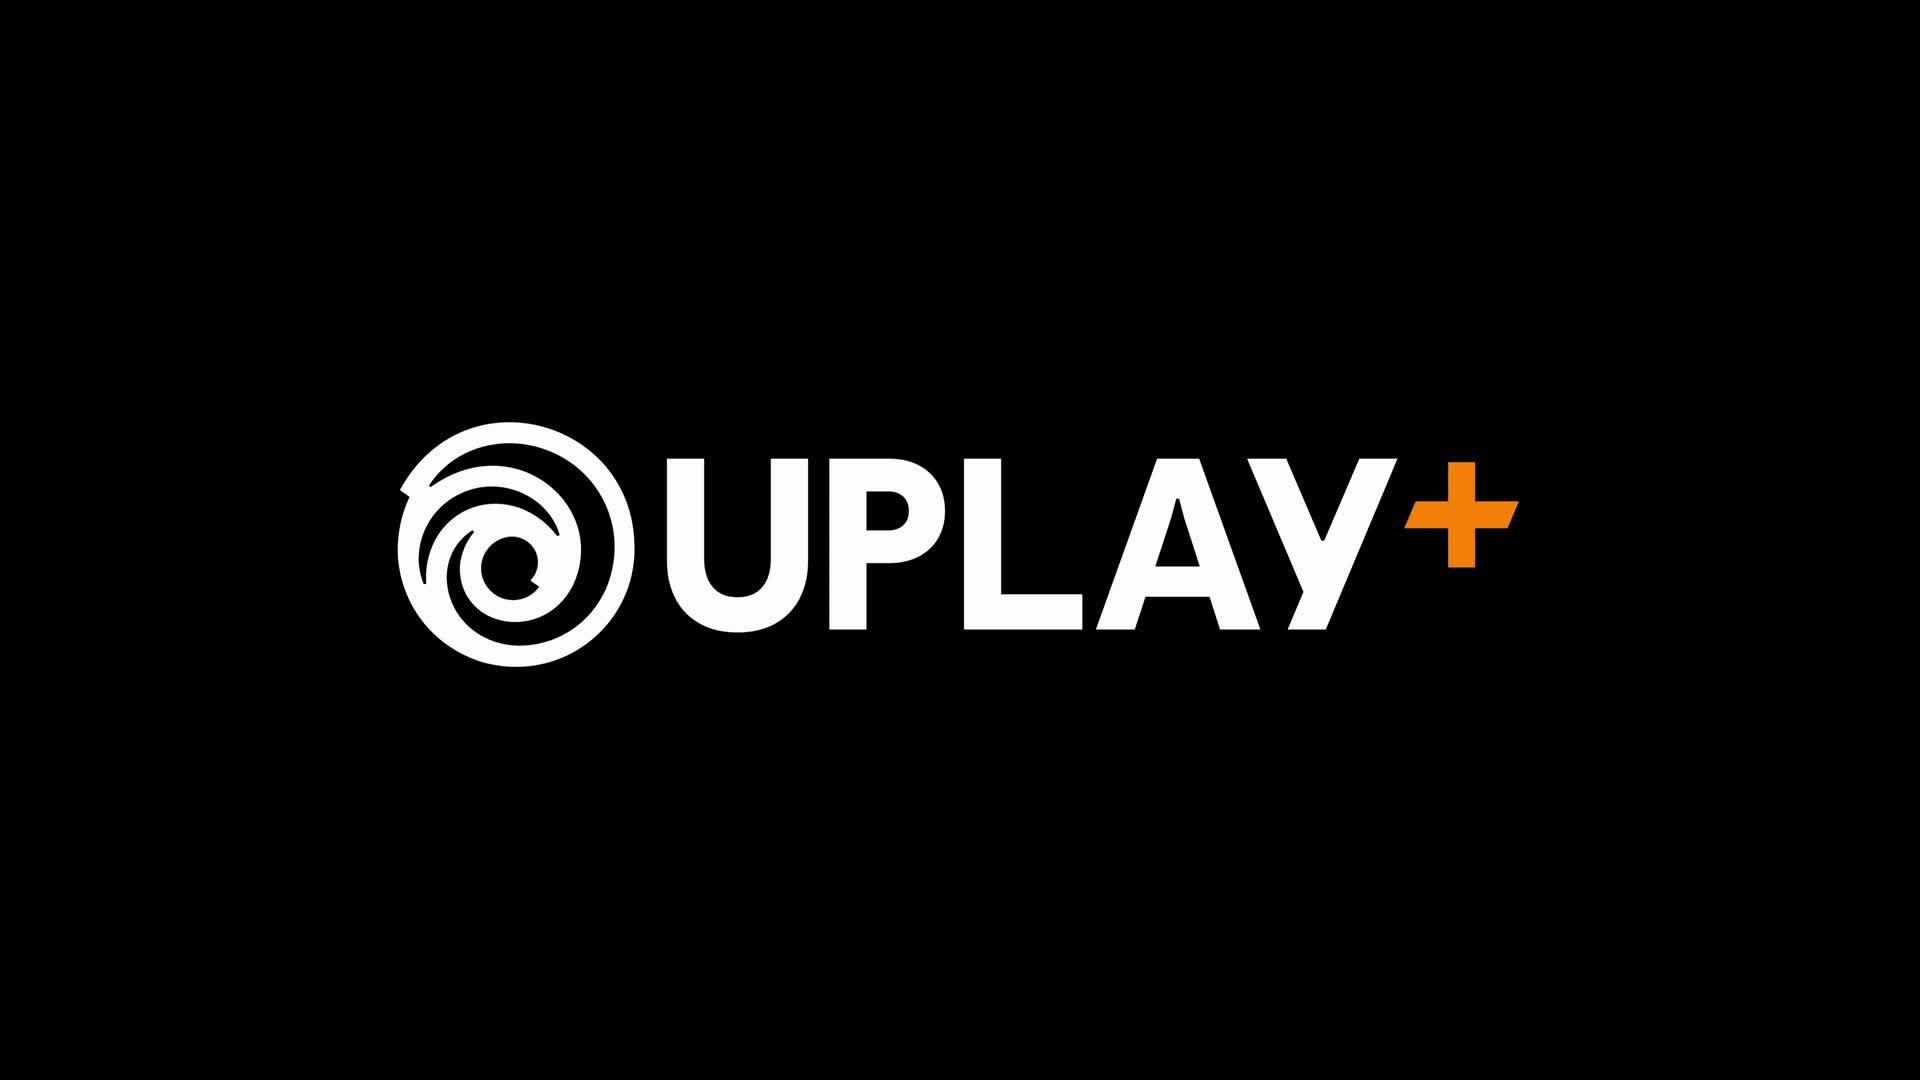 Gaming, Spiele, Ubisoft, Games, Assassin's Creed, Abo, Abonnement, Flatrate, Uplay, PC-Spiele, Google Stadia, The Division 2, Ghost Recon Breakpoint, Game Pass Ultimate, Online-Service, Uplay+, windows pc, Origin Access Premier